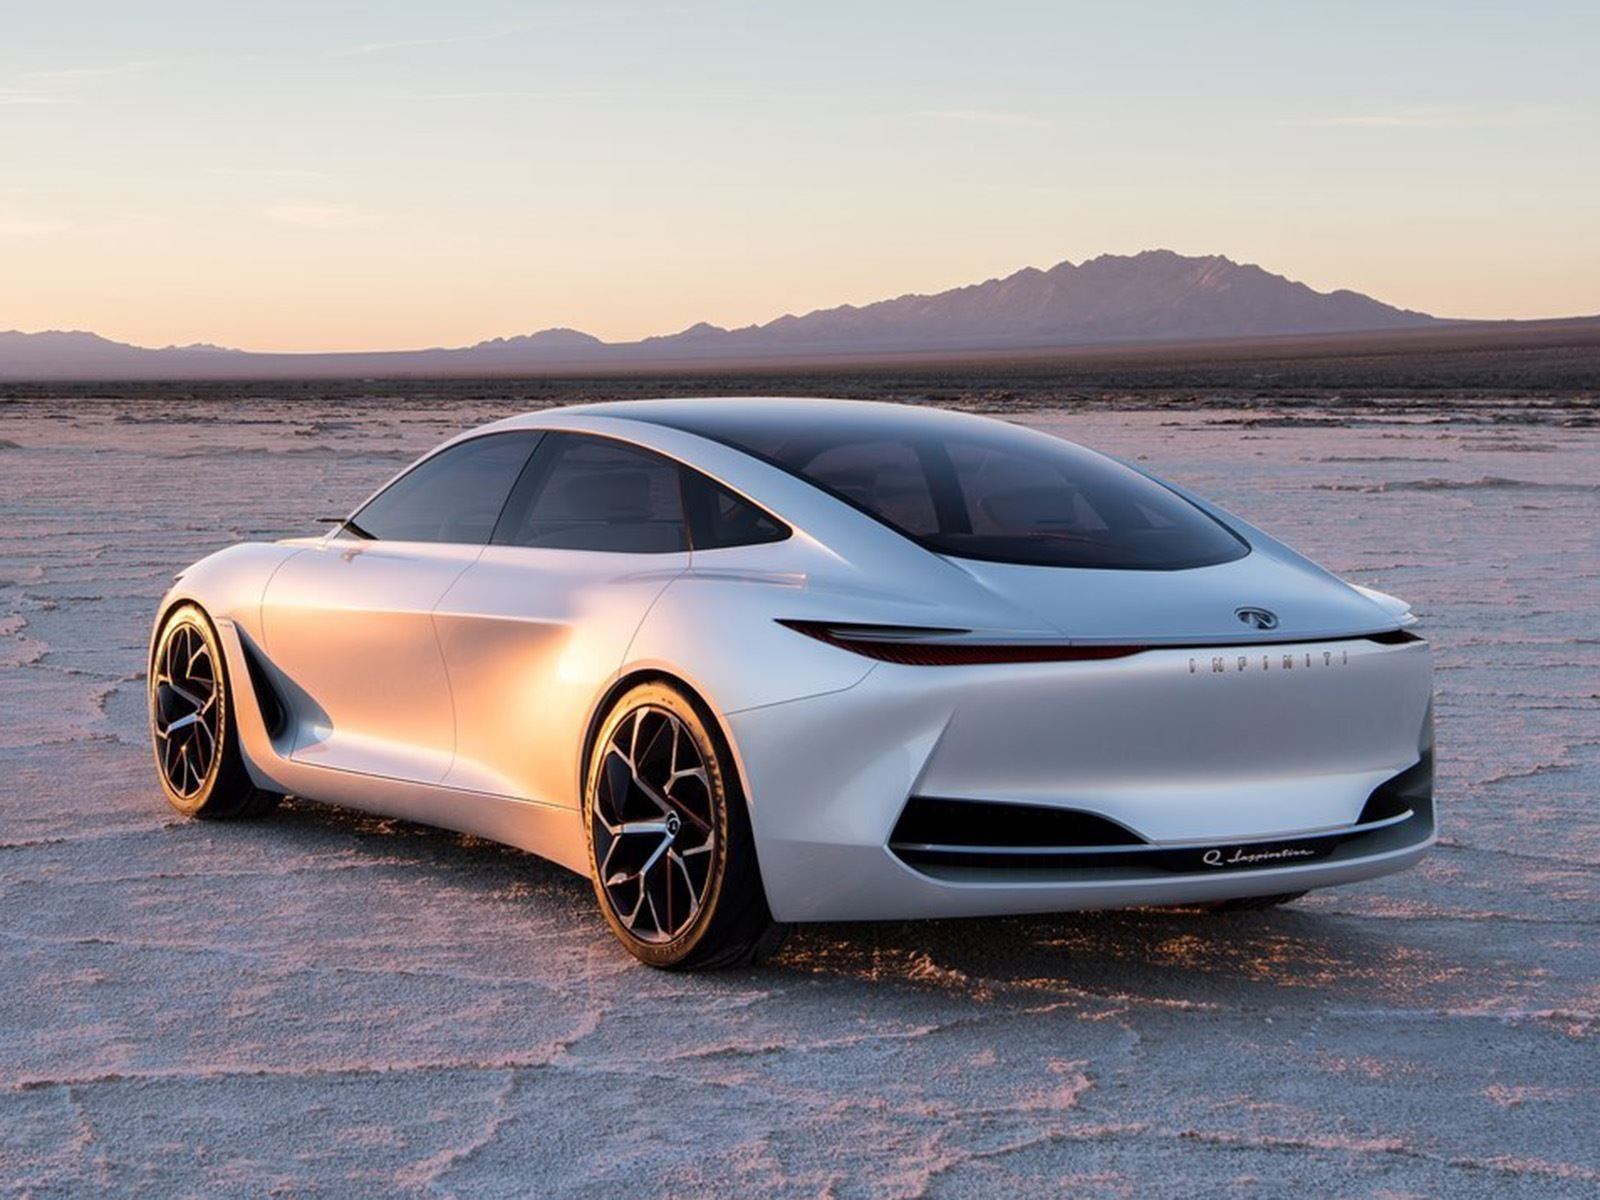 Infiniti Confirms Its Electric Cars Will Be Pretty | CarBuzz